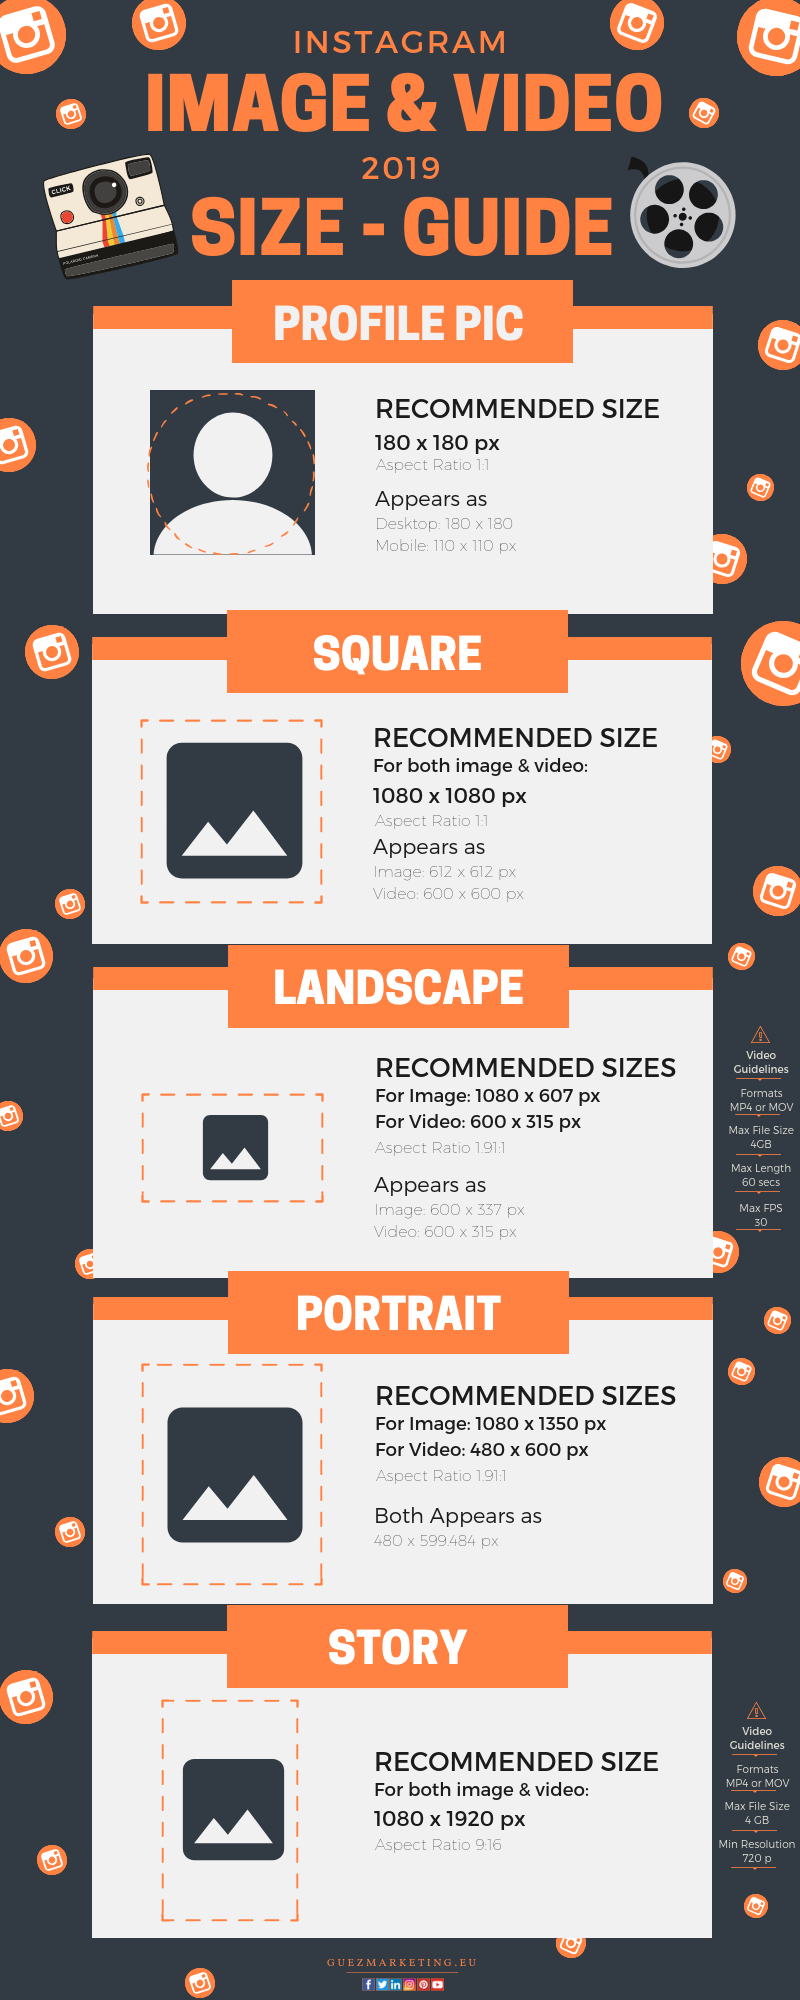 Instagram Image and Video Size Guide 2019 | Guez Marketing